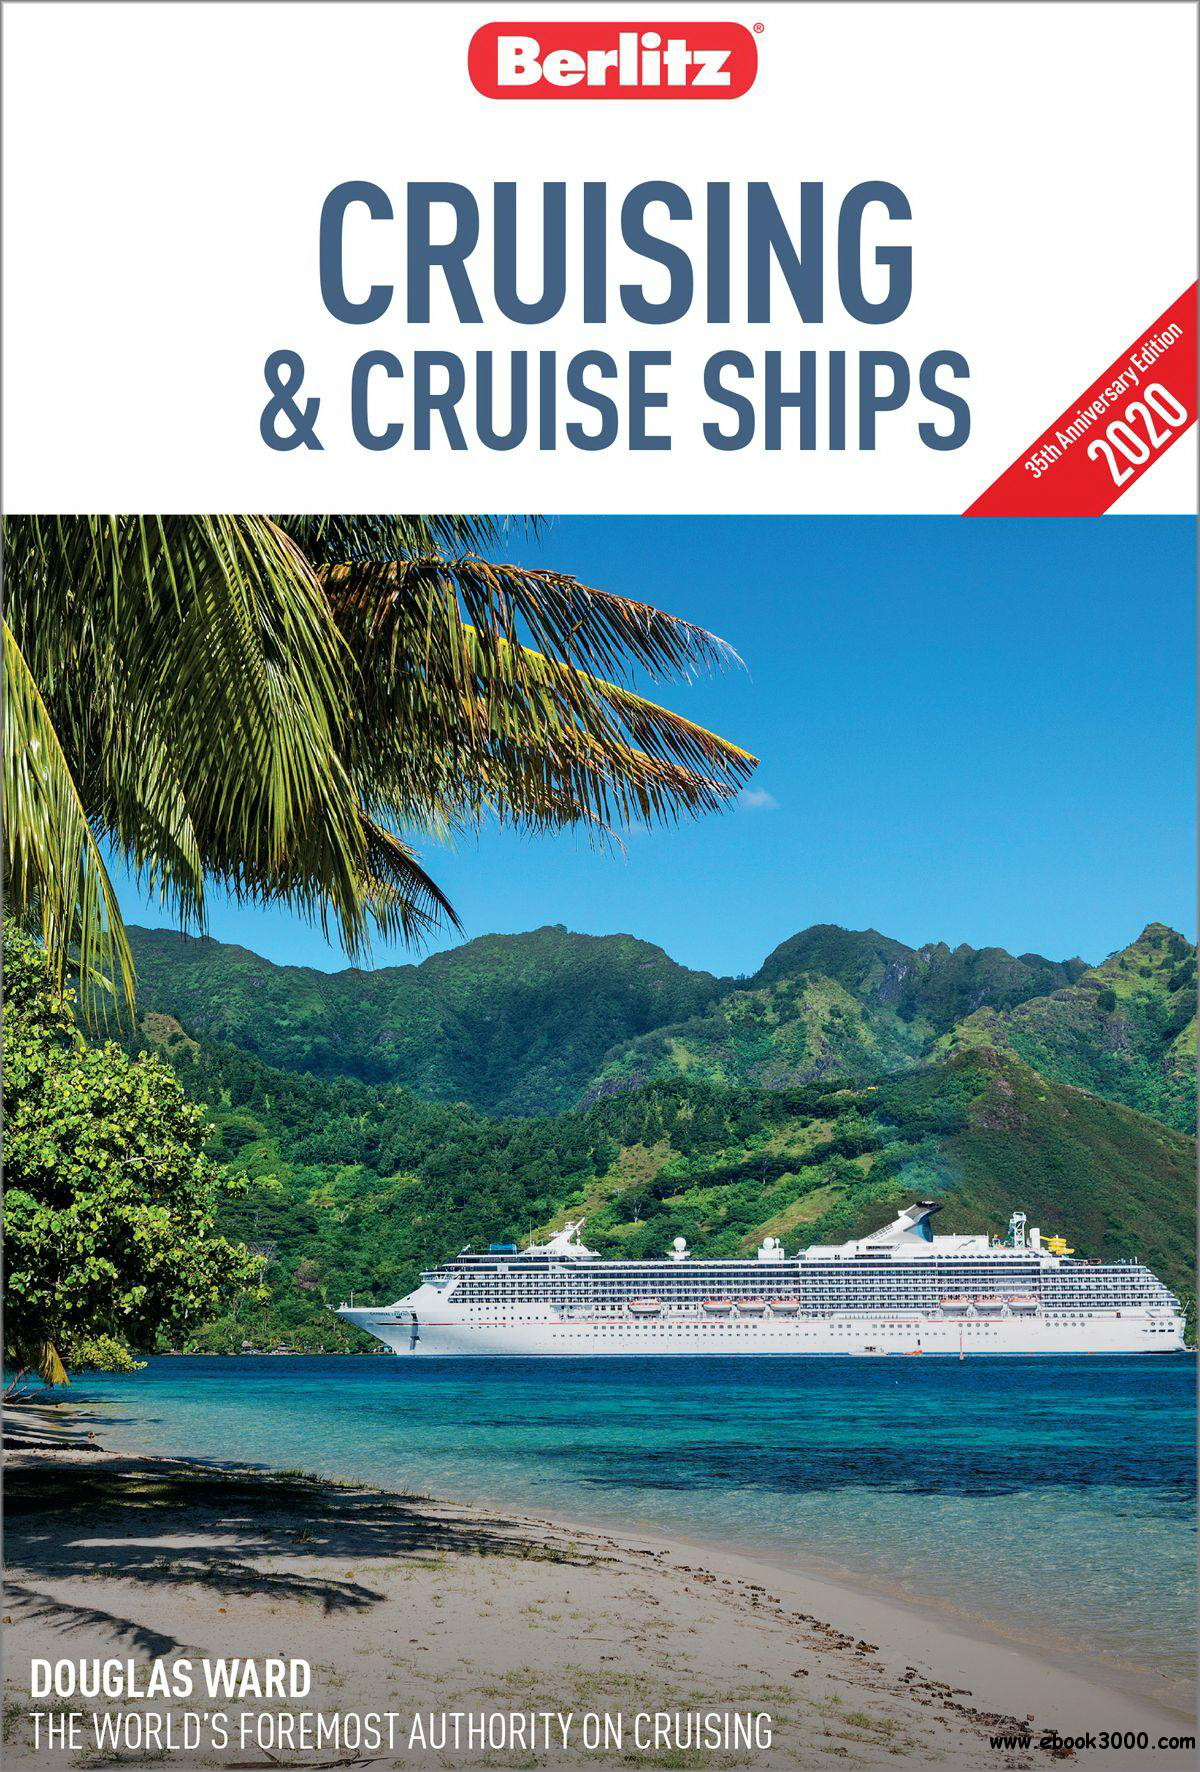 Berlitz_Cruising_and_Cruise_Ships_2020.jpg